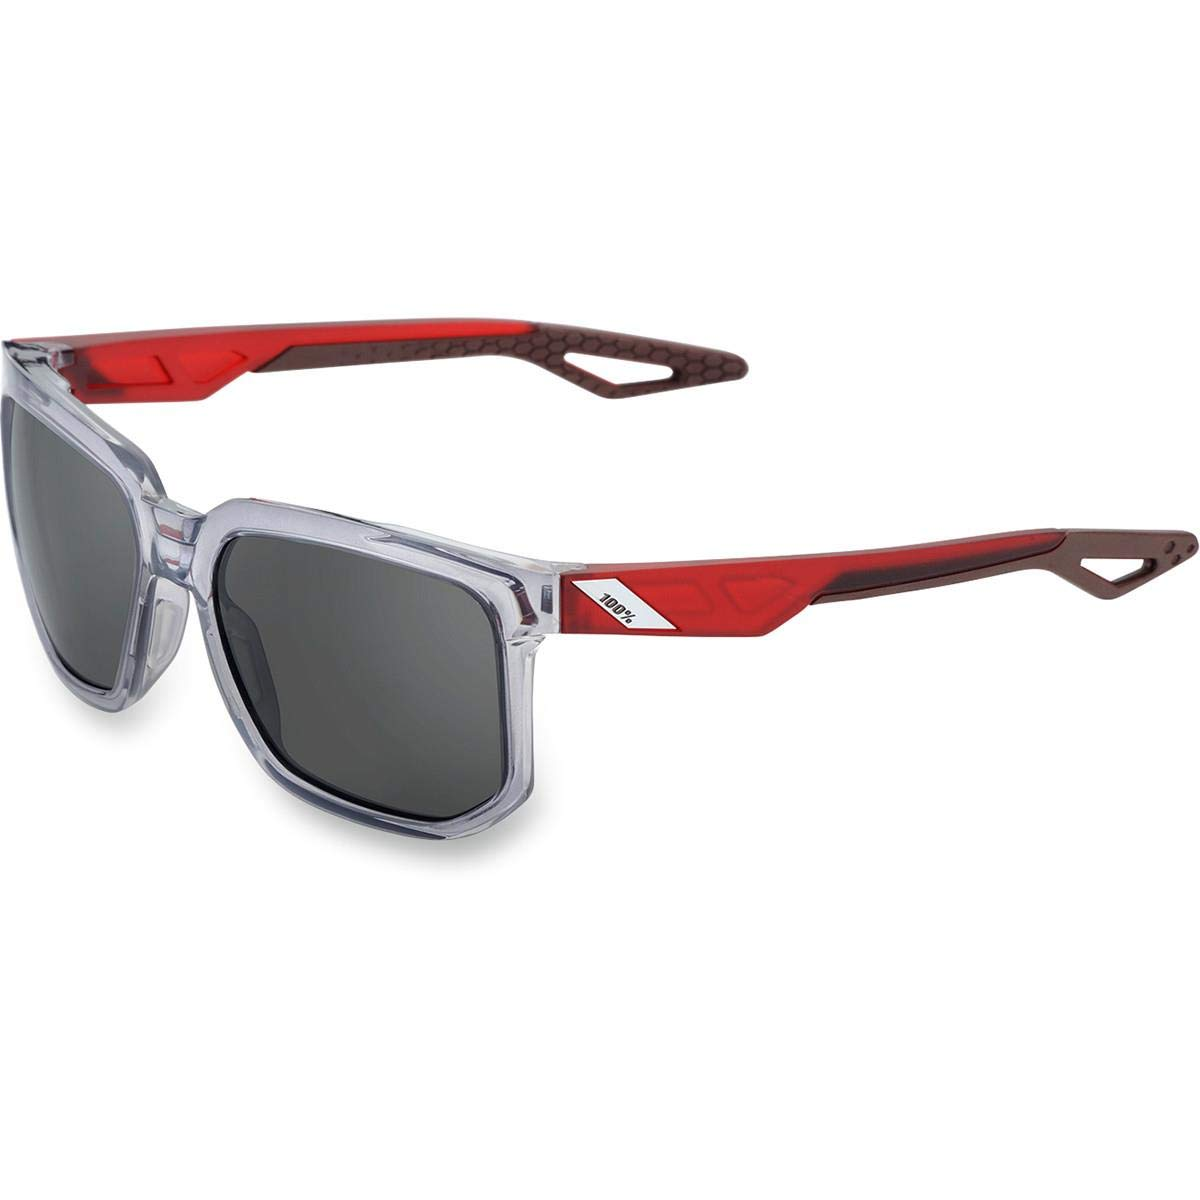 Centric-Polished Crystal Grey-Smoke Lens 61027-007-57 Gray Free Size 100/% Unisex-Adult Speedlab